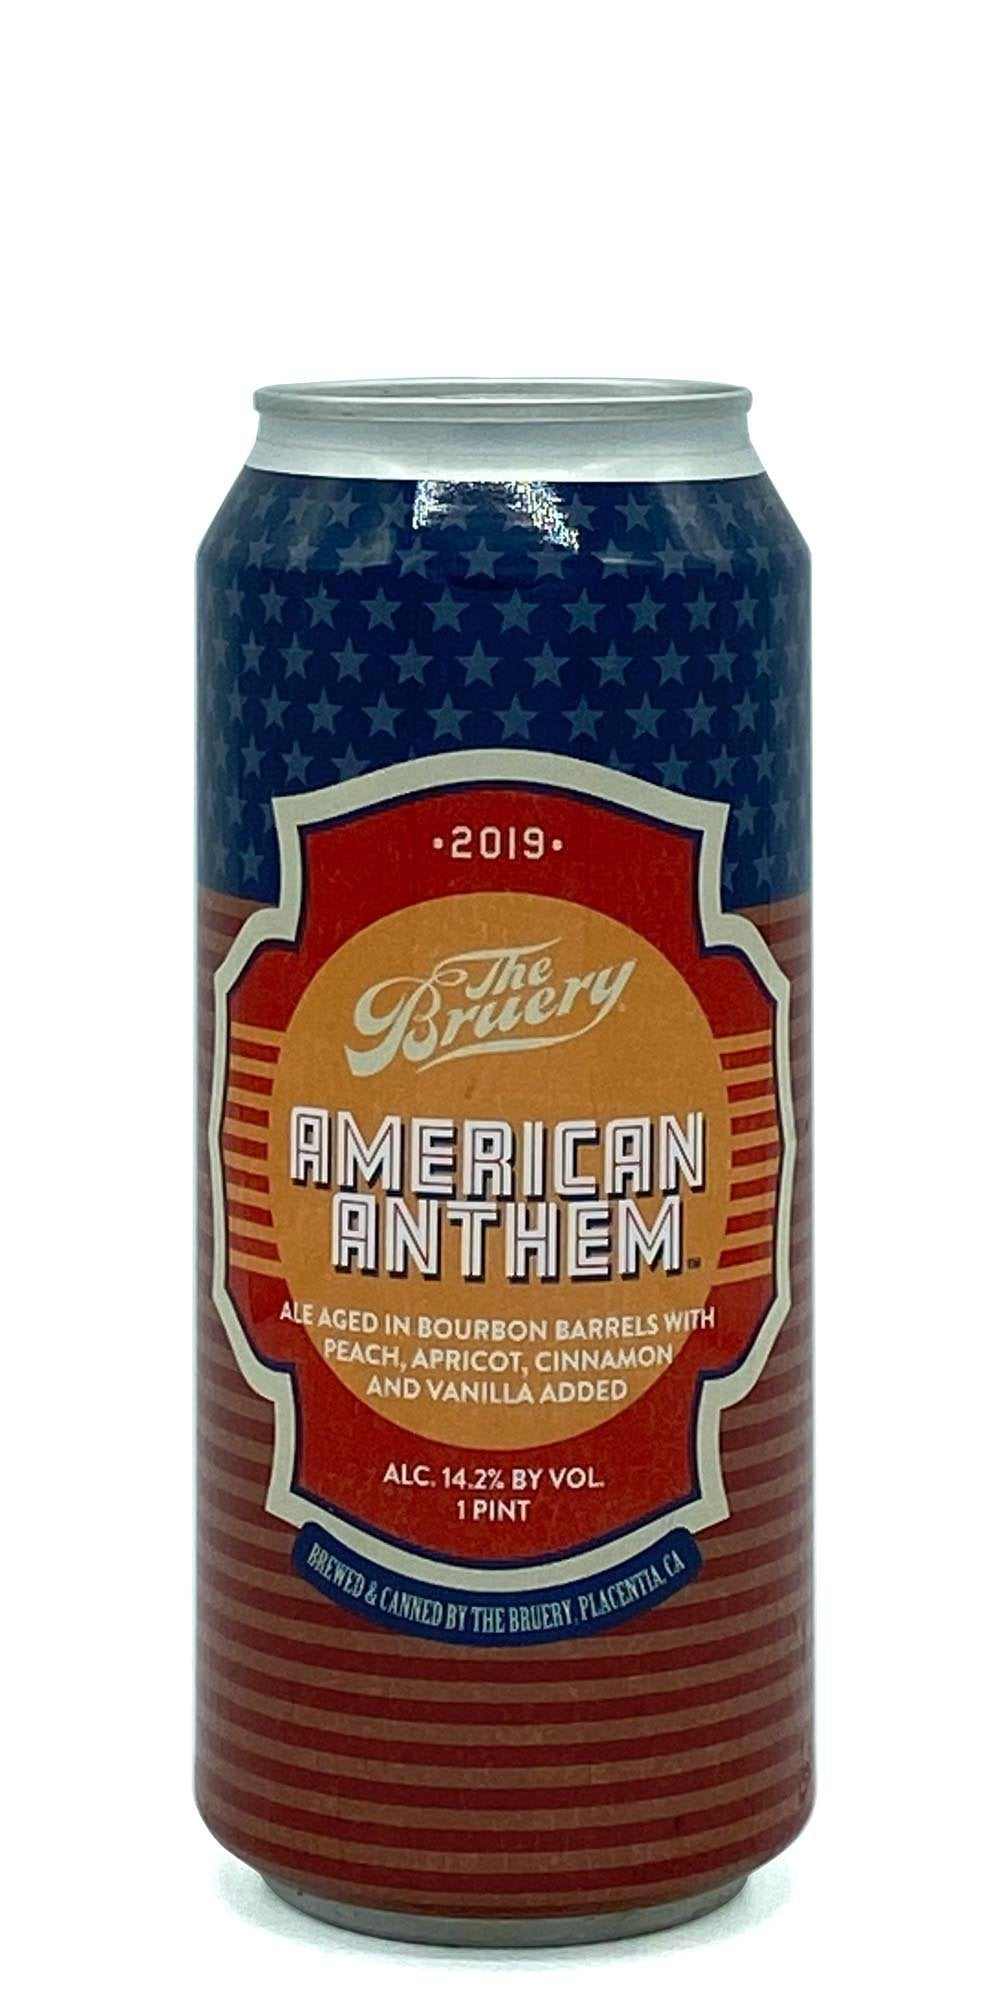 The Bruery - American Anthem - Drikbeer - Order Craft Beer Online